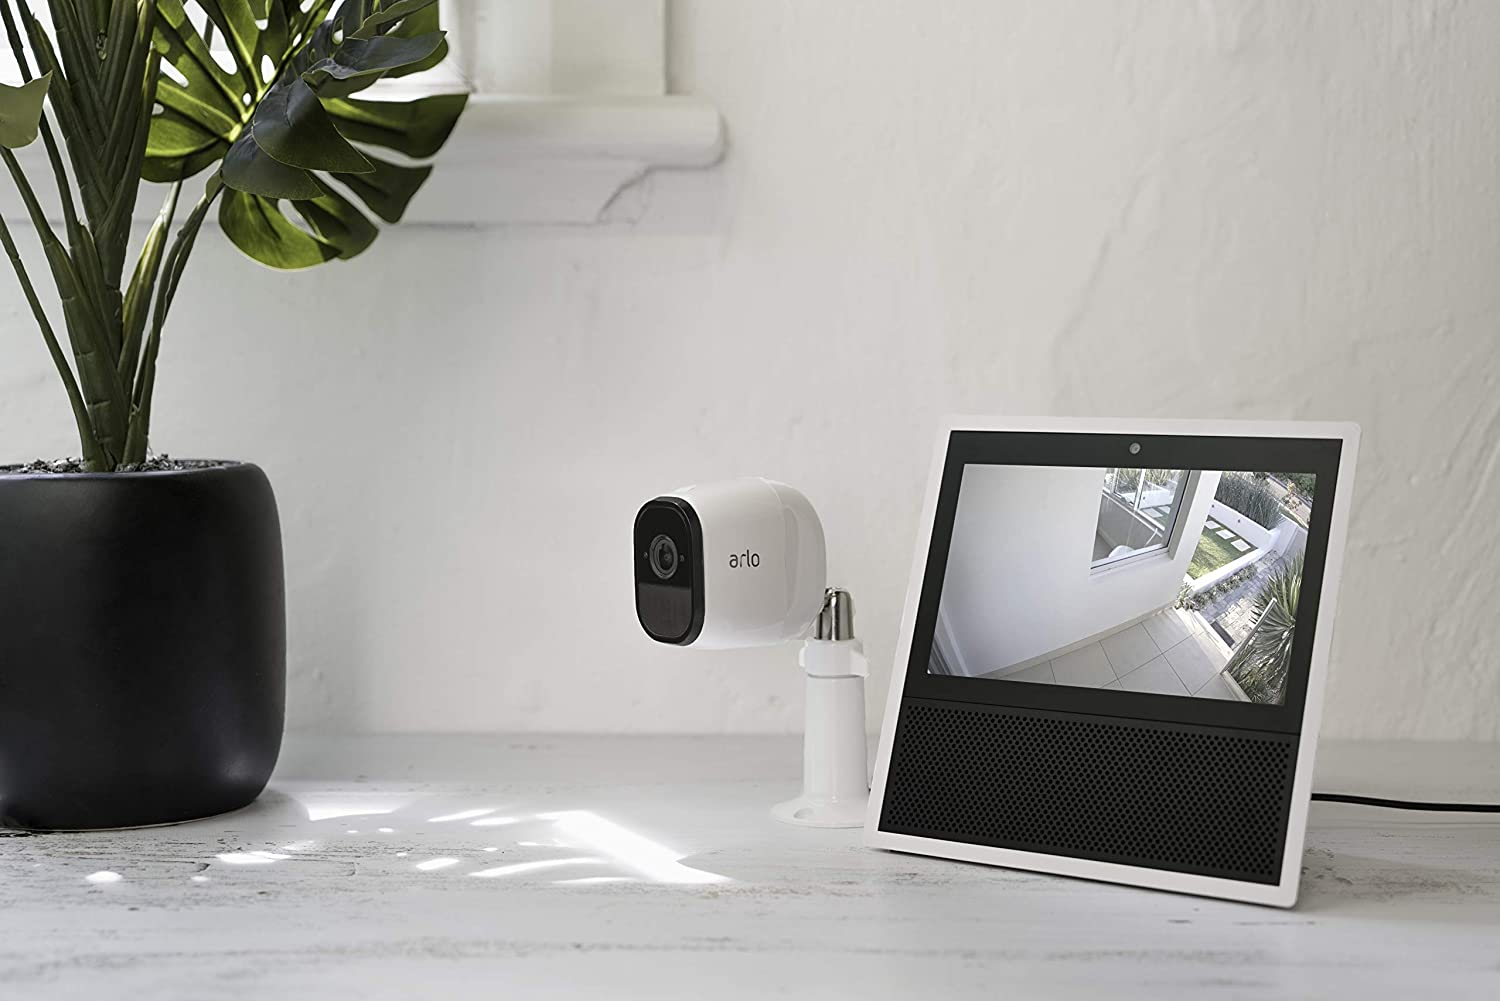 Arlo Pro Wire-Free HD Home Security 2 Camera System VMS4230-100AUS One Security System